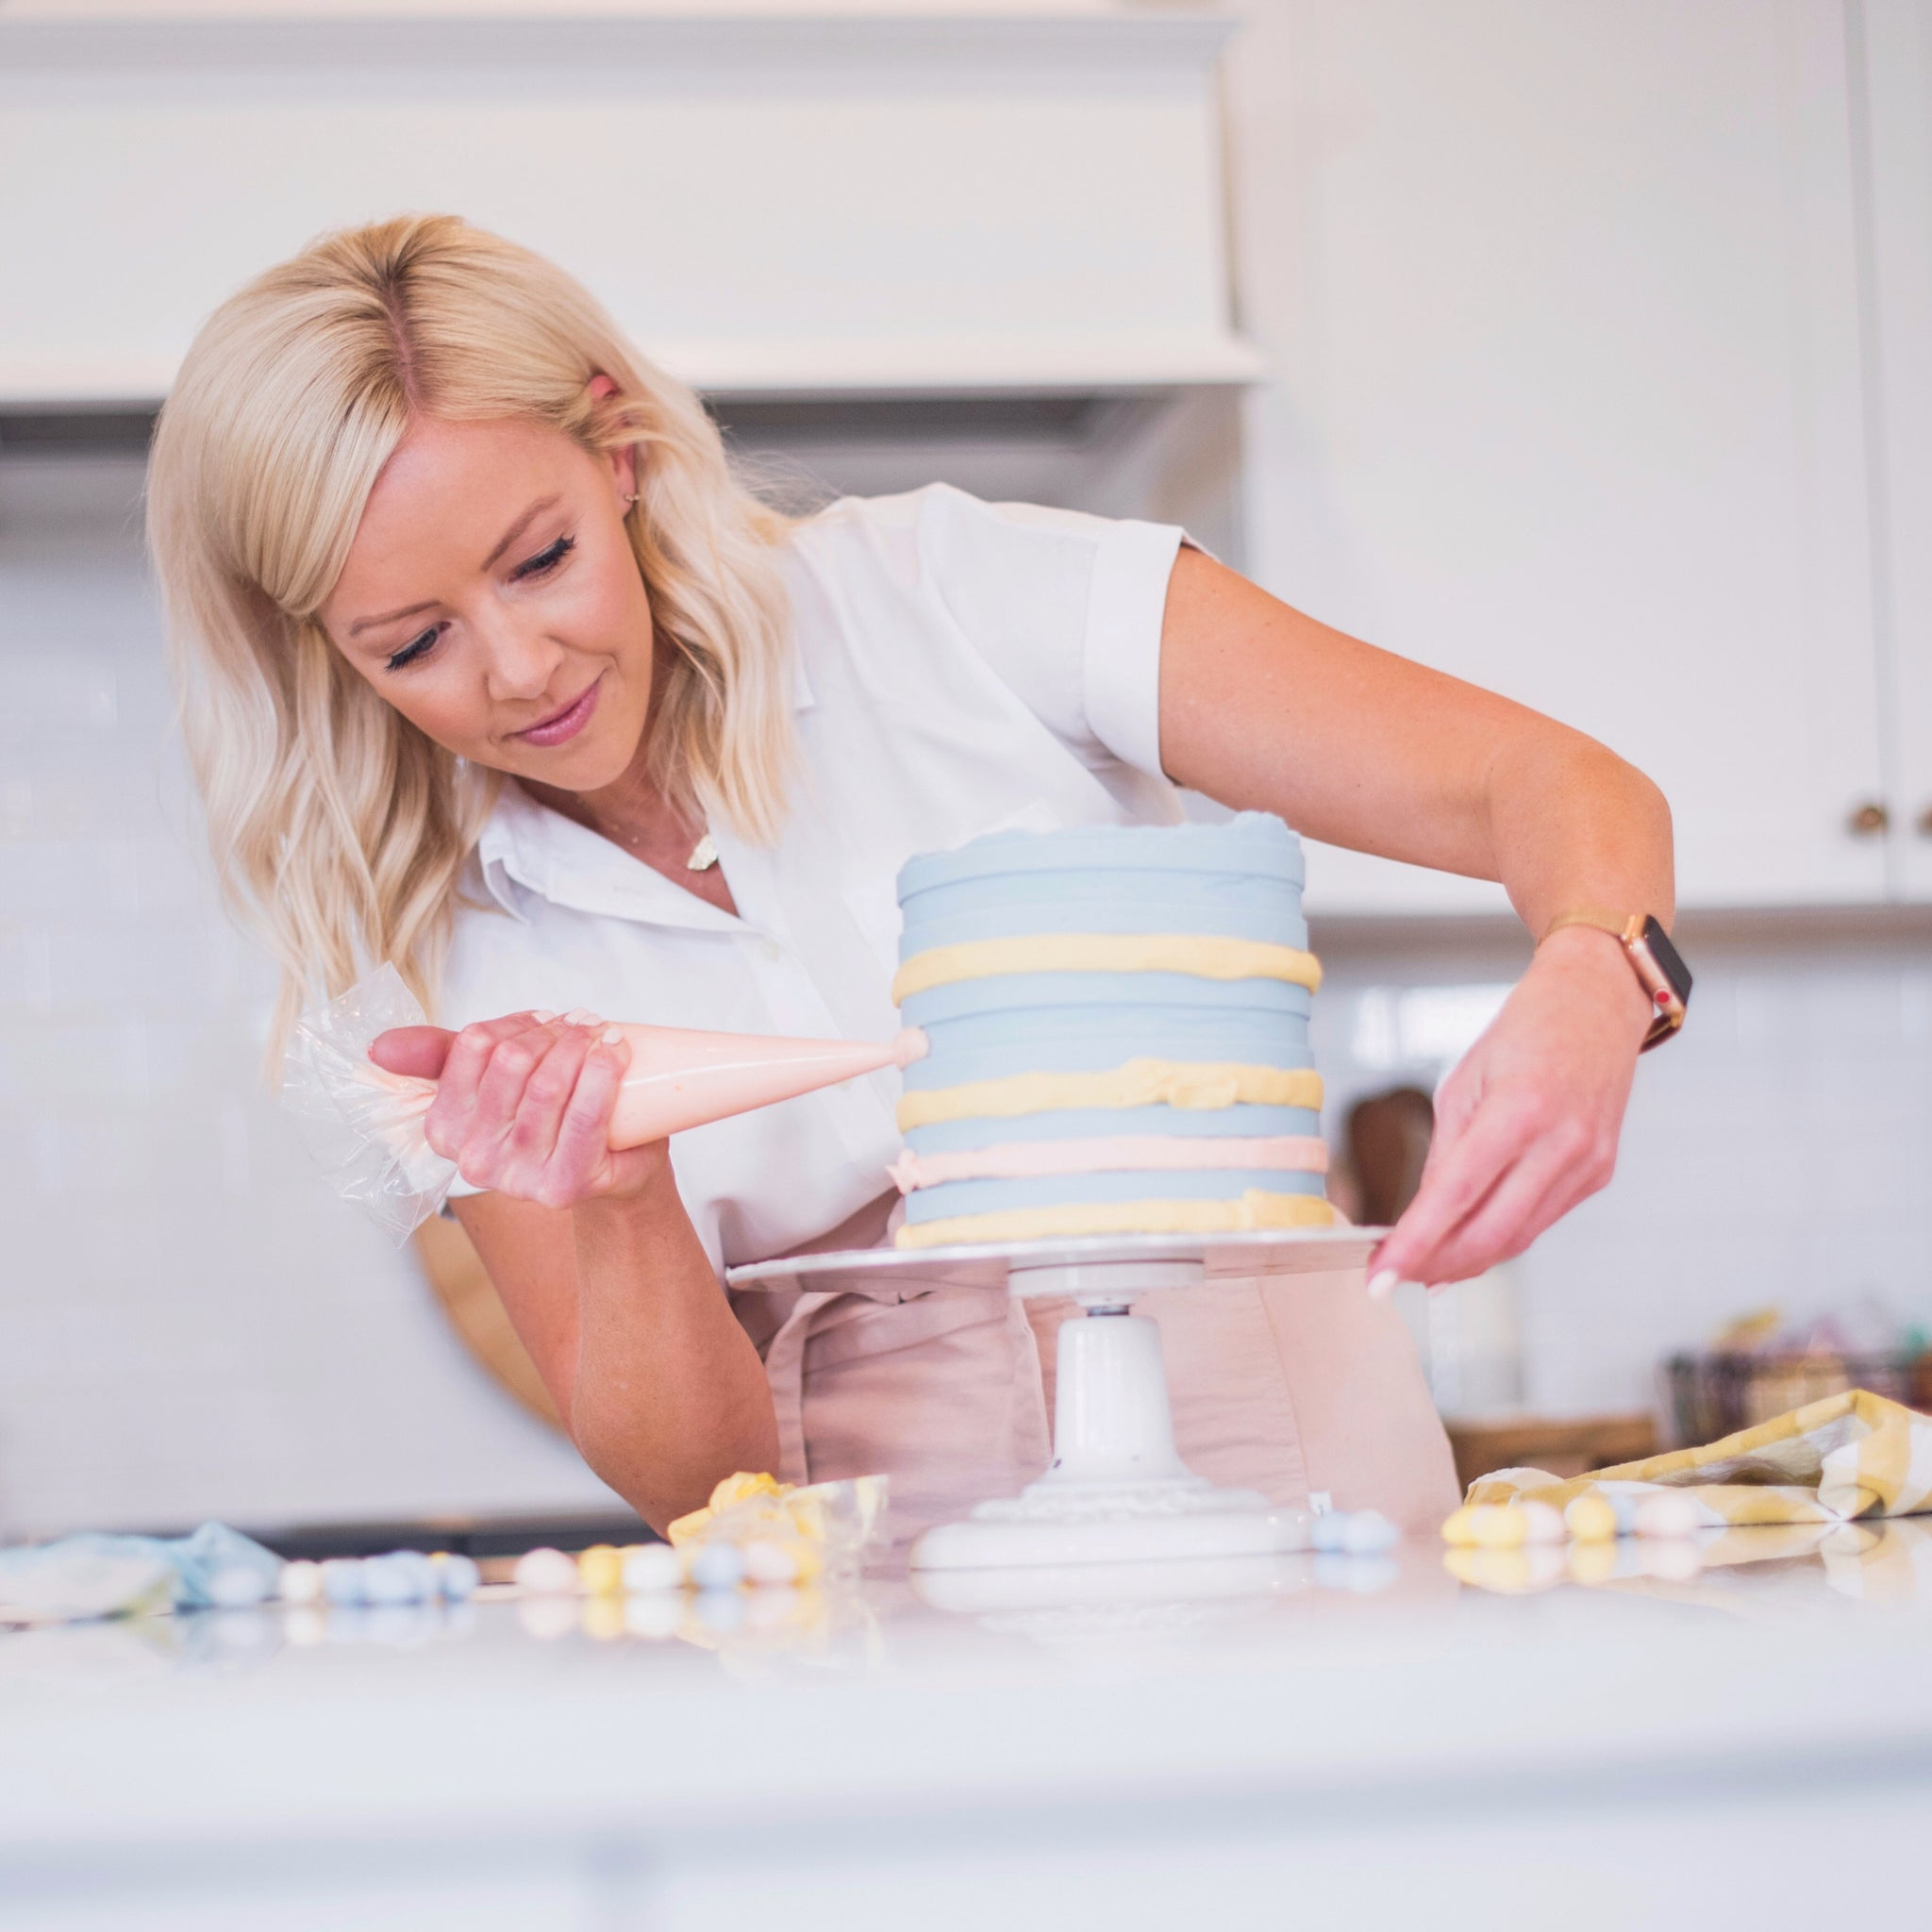 Courtney wearing a white shirt and pink apron icing a striped cake in her kitchen using her Pink Piping Bag which can be purchased on the website